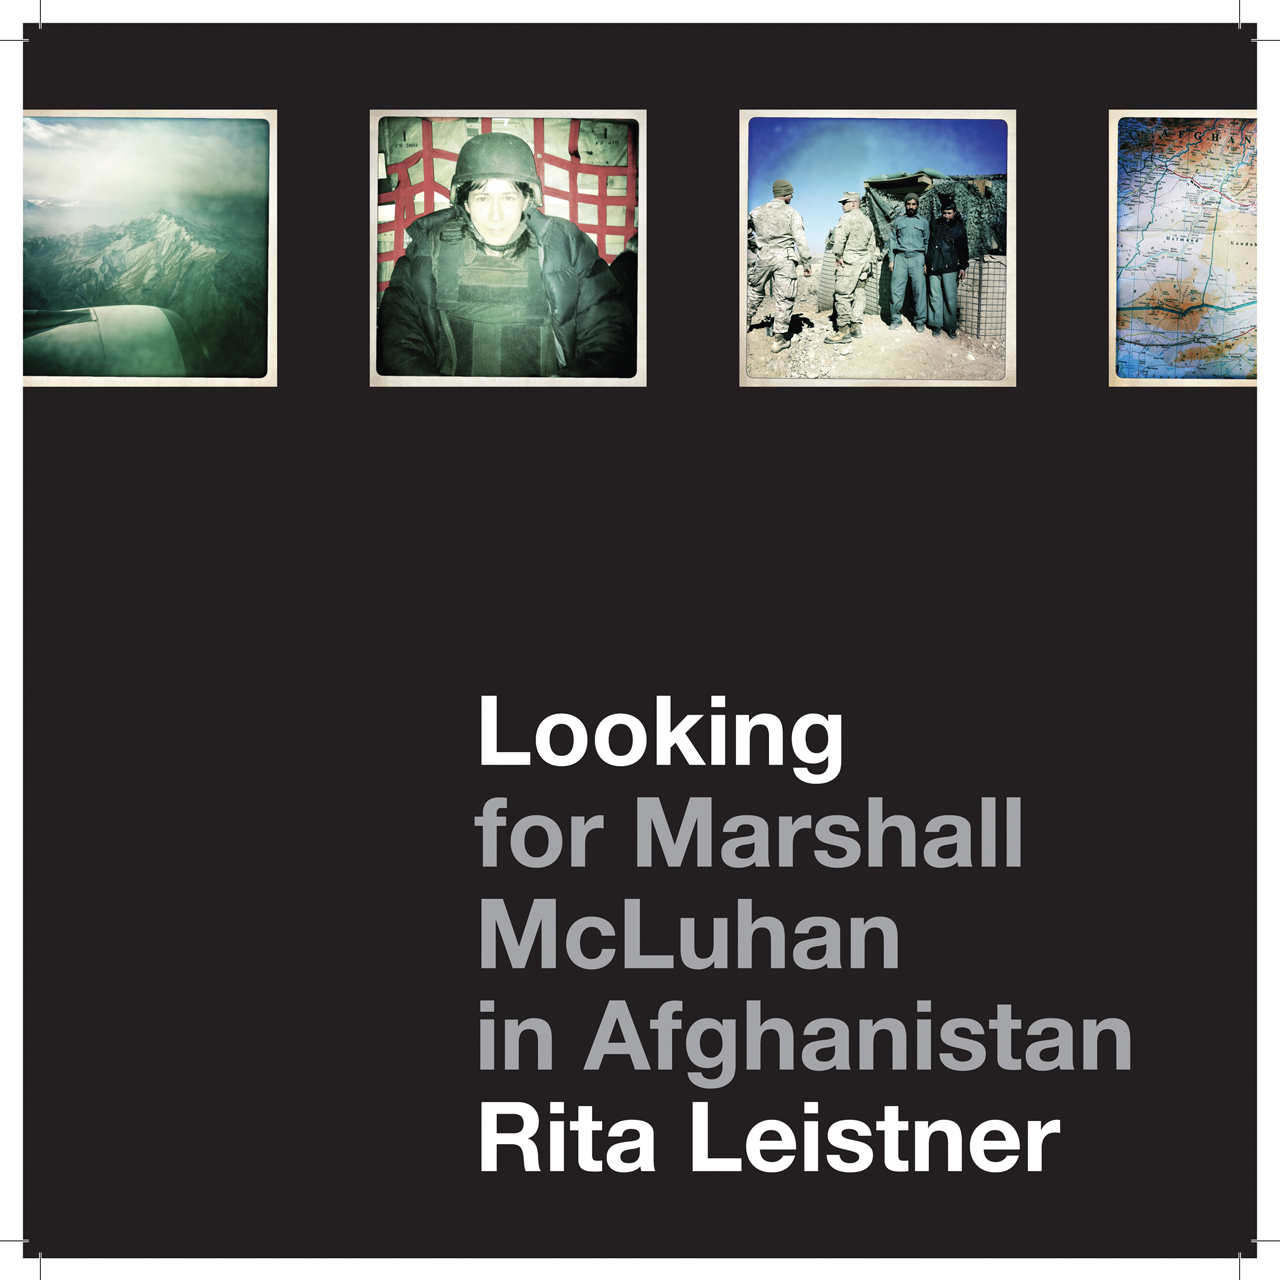 Looking for Marshall McLuhan in Afghanistan: iProbes and iPhone Photographs